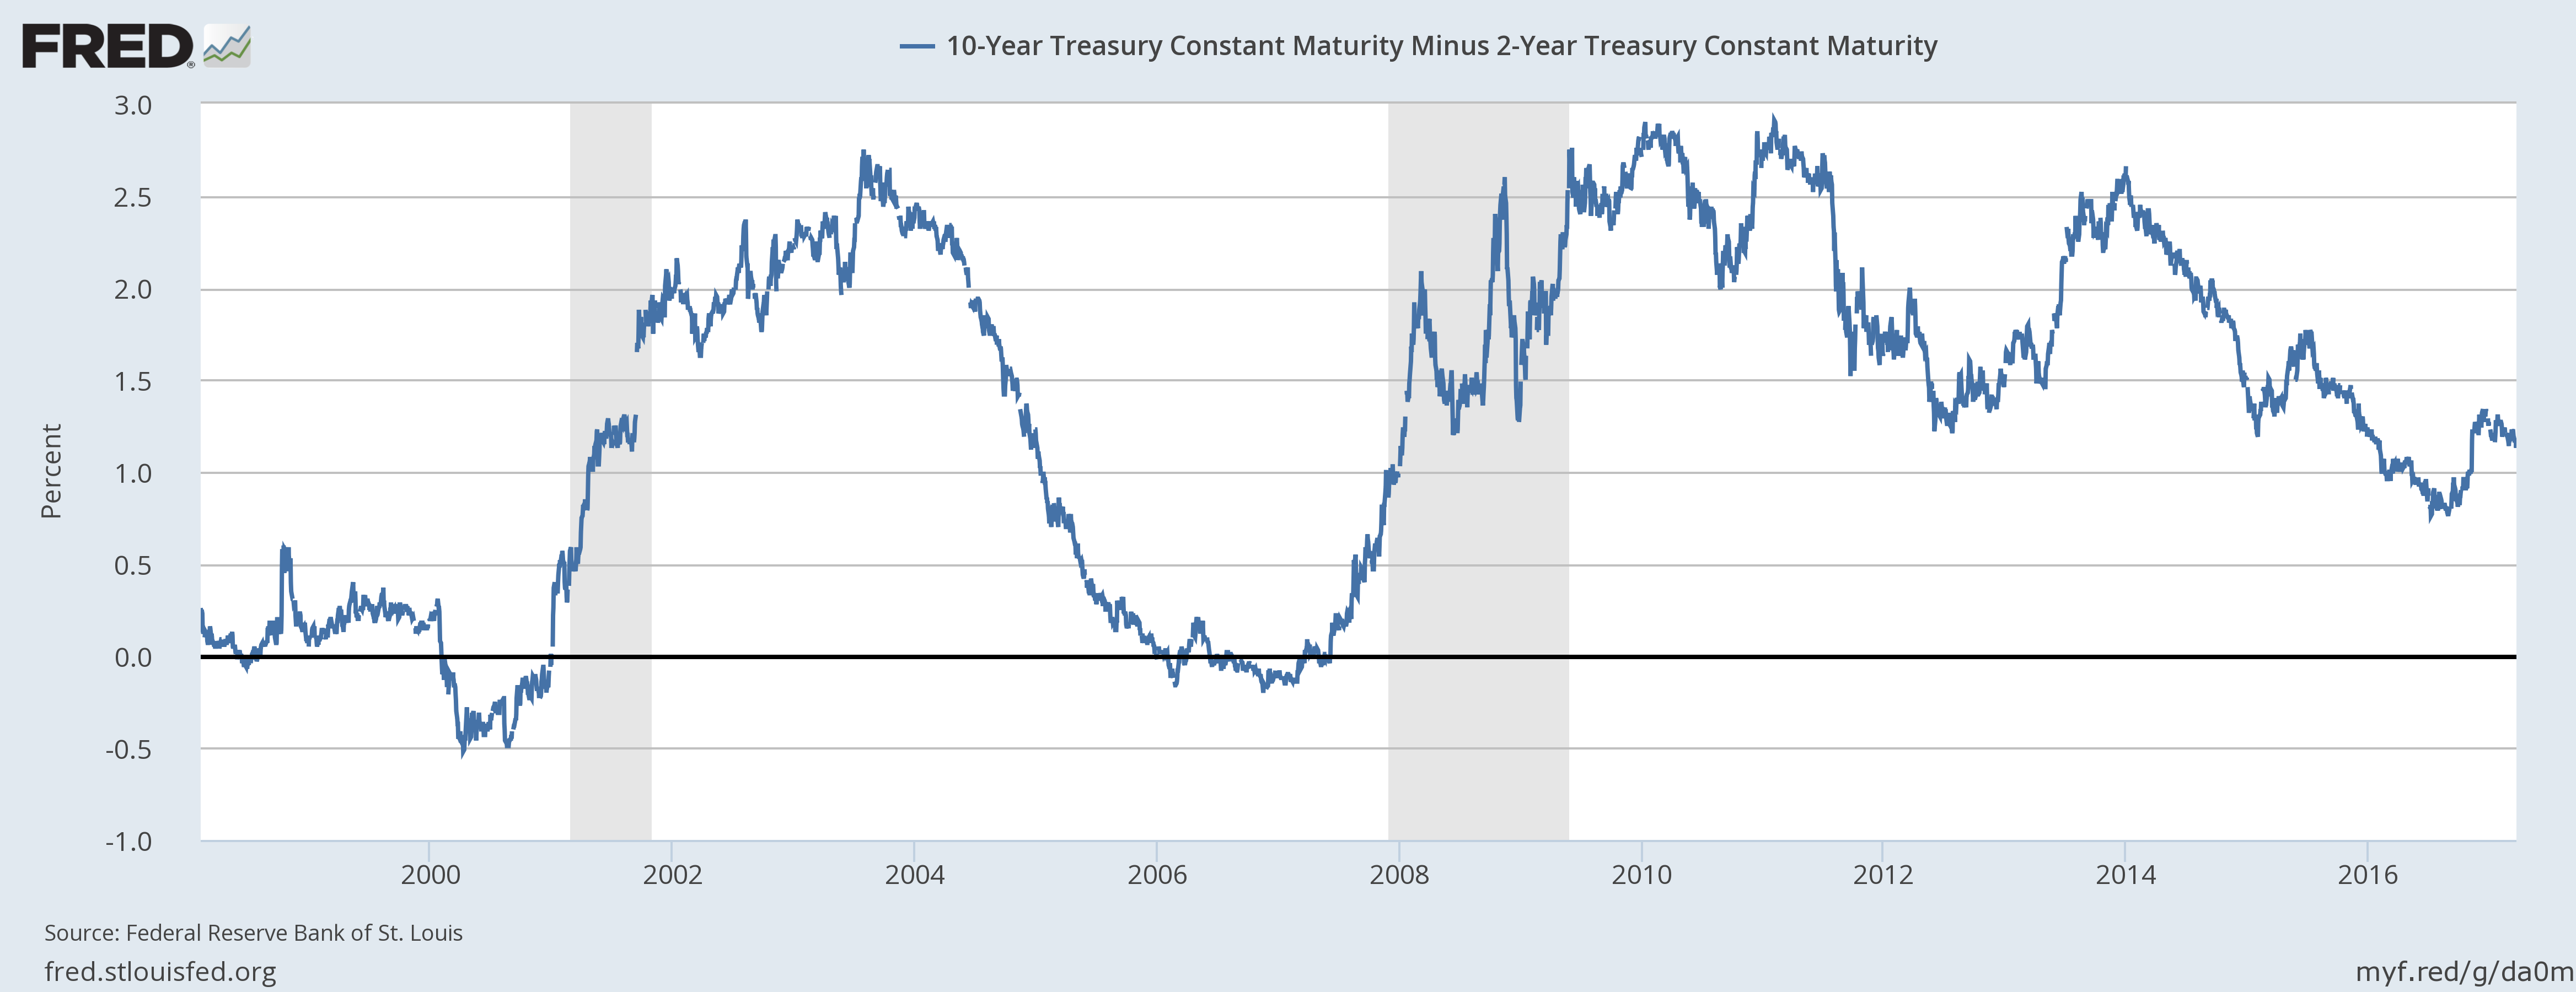 10 Year Treasury Constant Maturity Minus 2 Year, 1999 - 2017